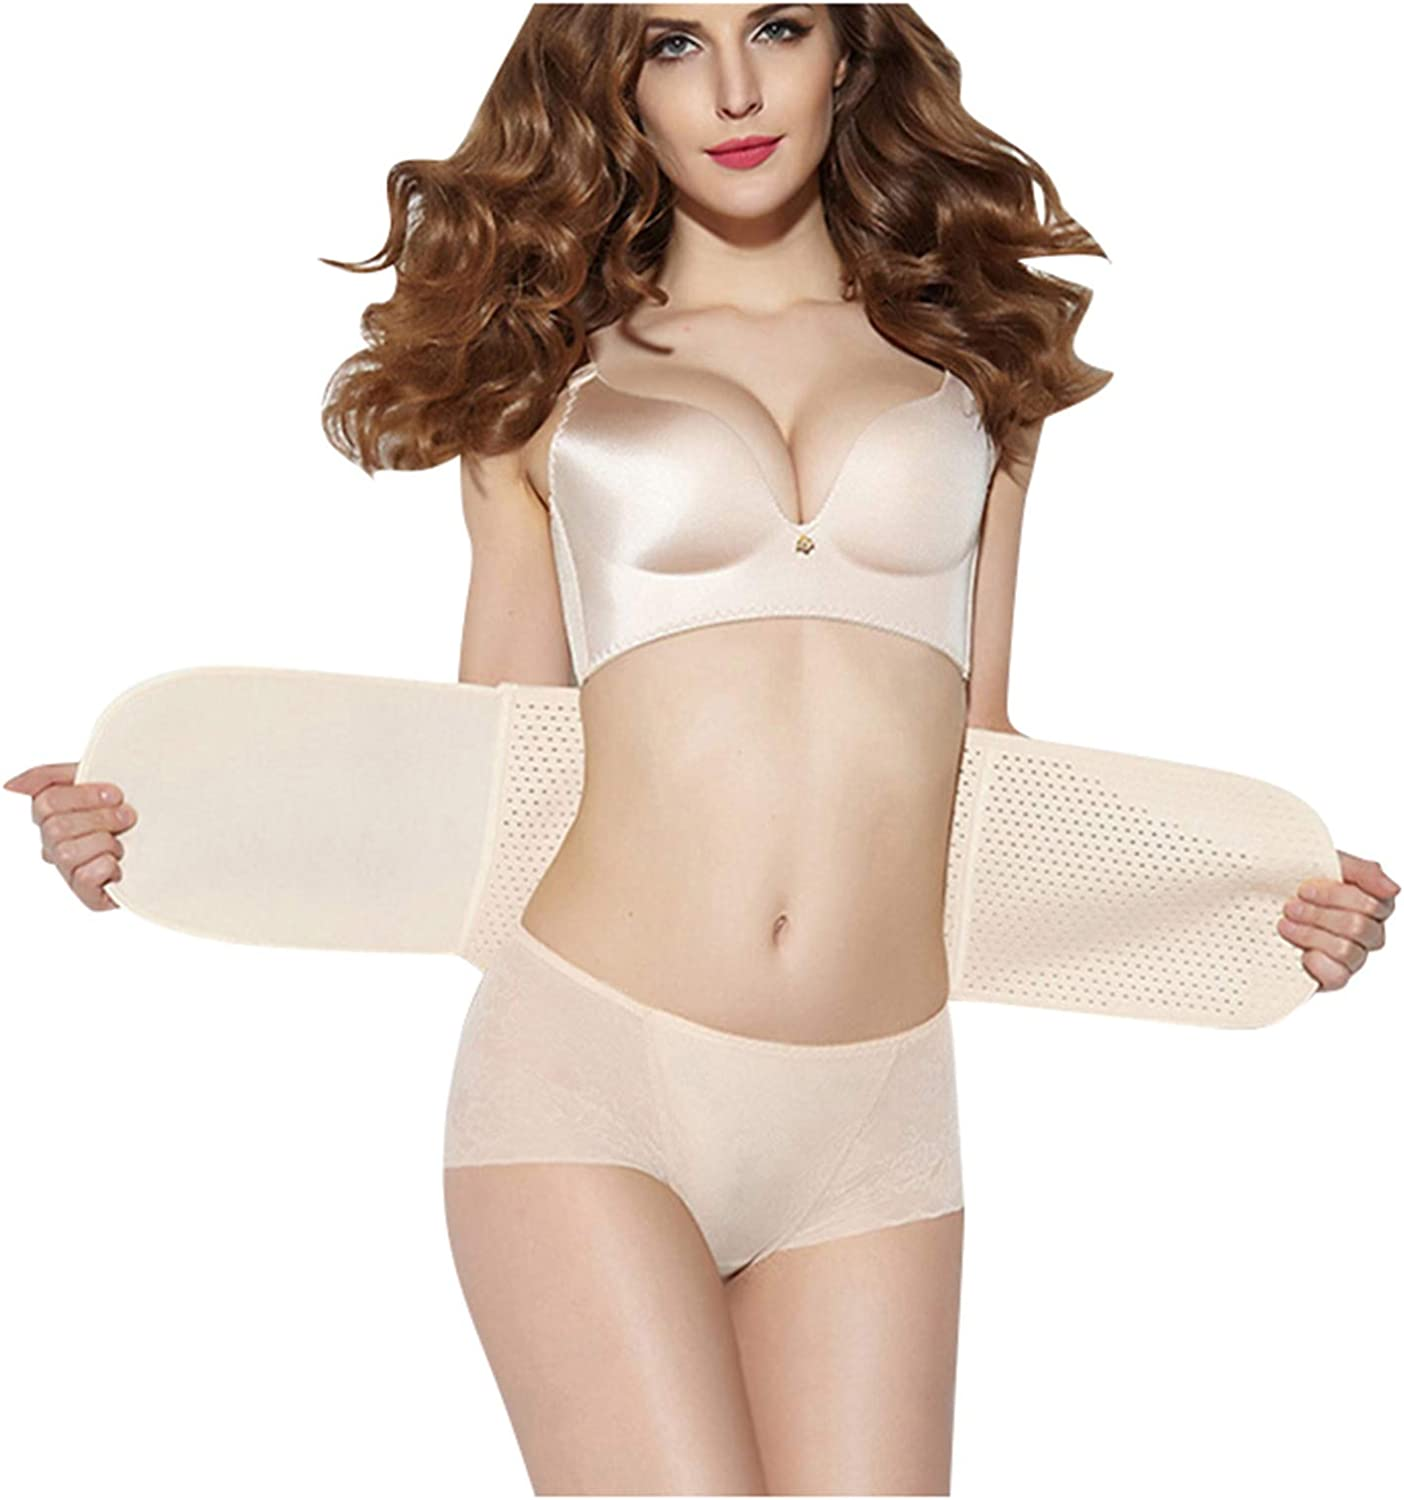 Max 87% OFF DOAEGNG Women's Breathable Corset trust Waist Shaping Bustie Body